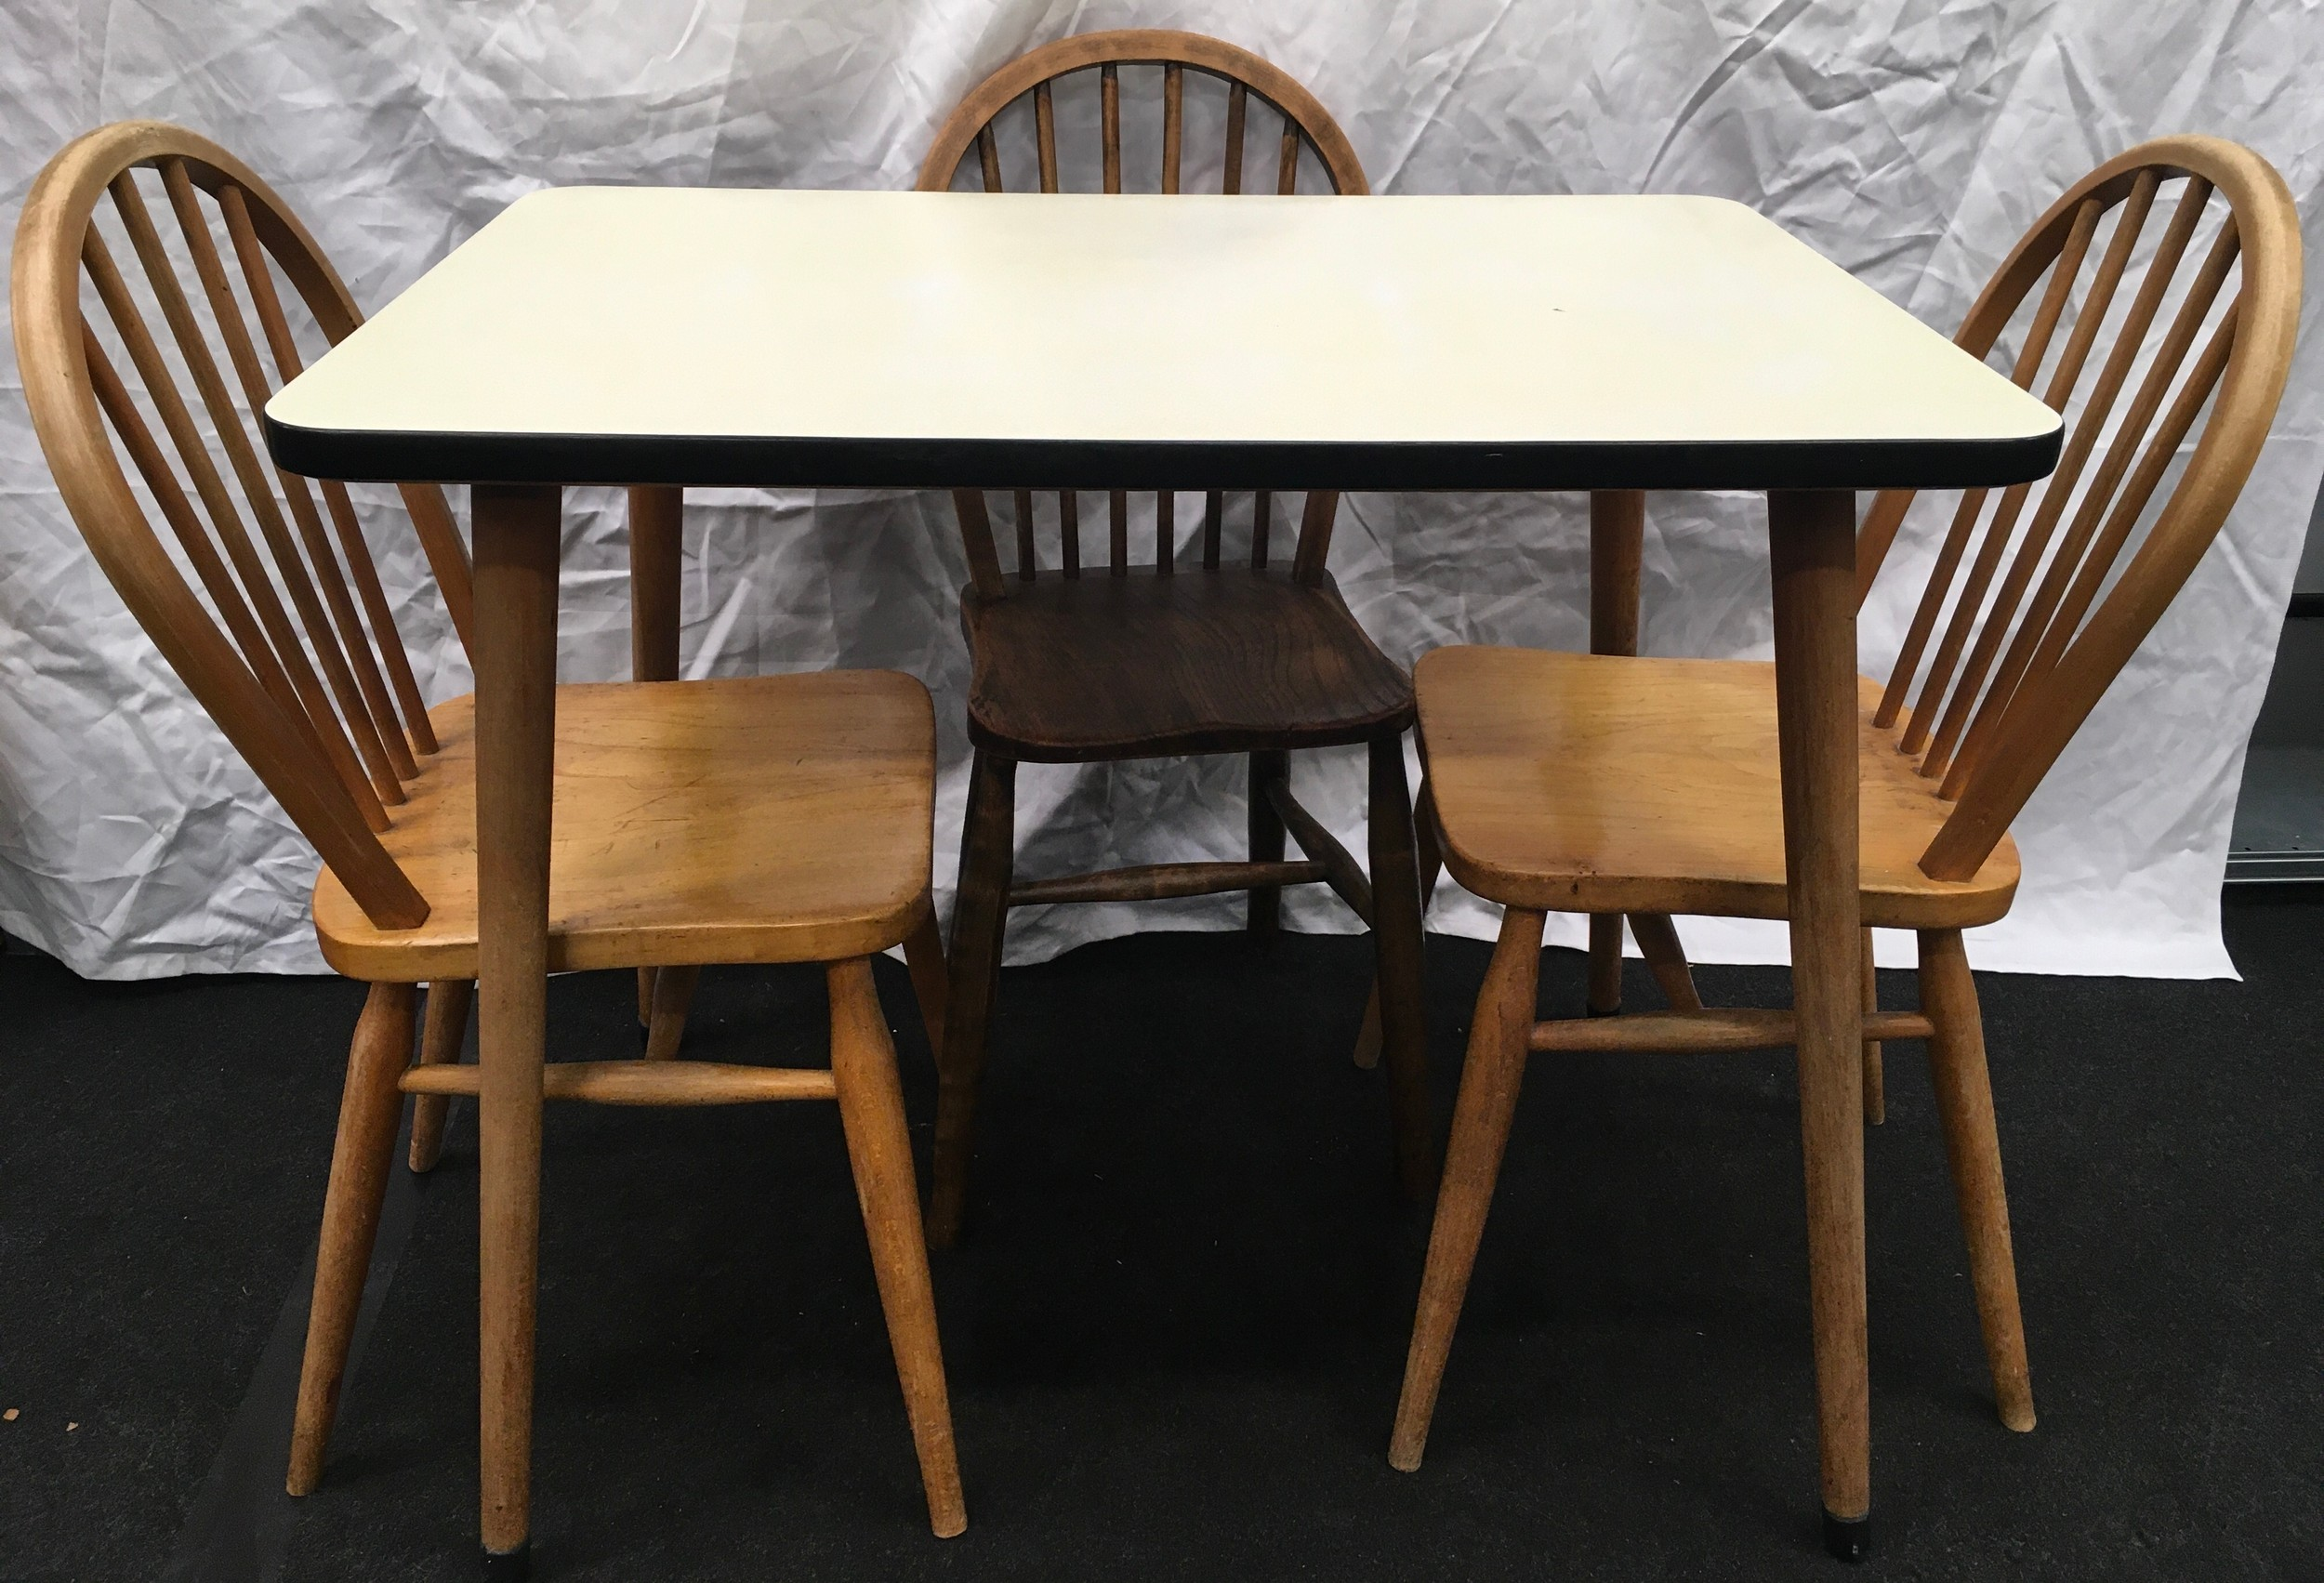 Vintage 1960's formica topped kitchen table. 91cm wide x 60cm deep x 78cm tall together with three